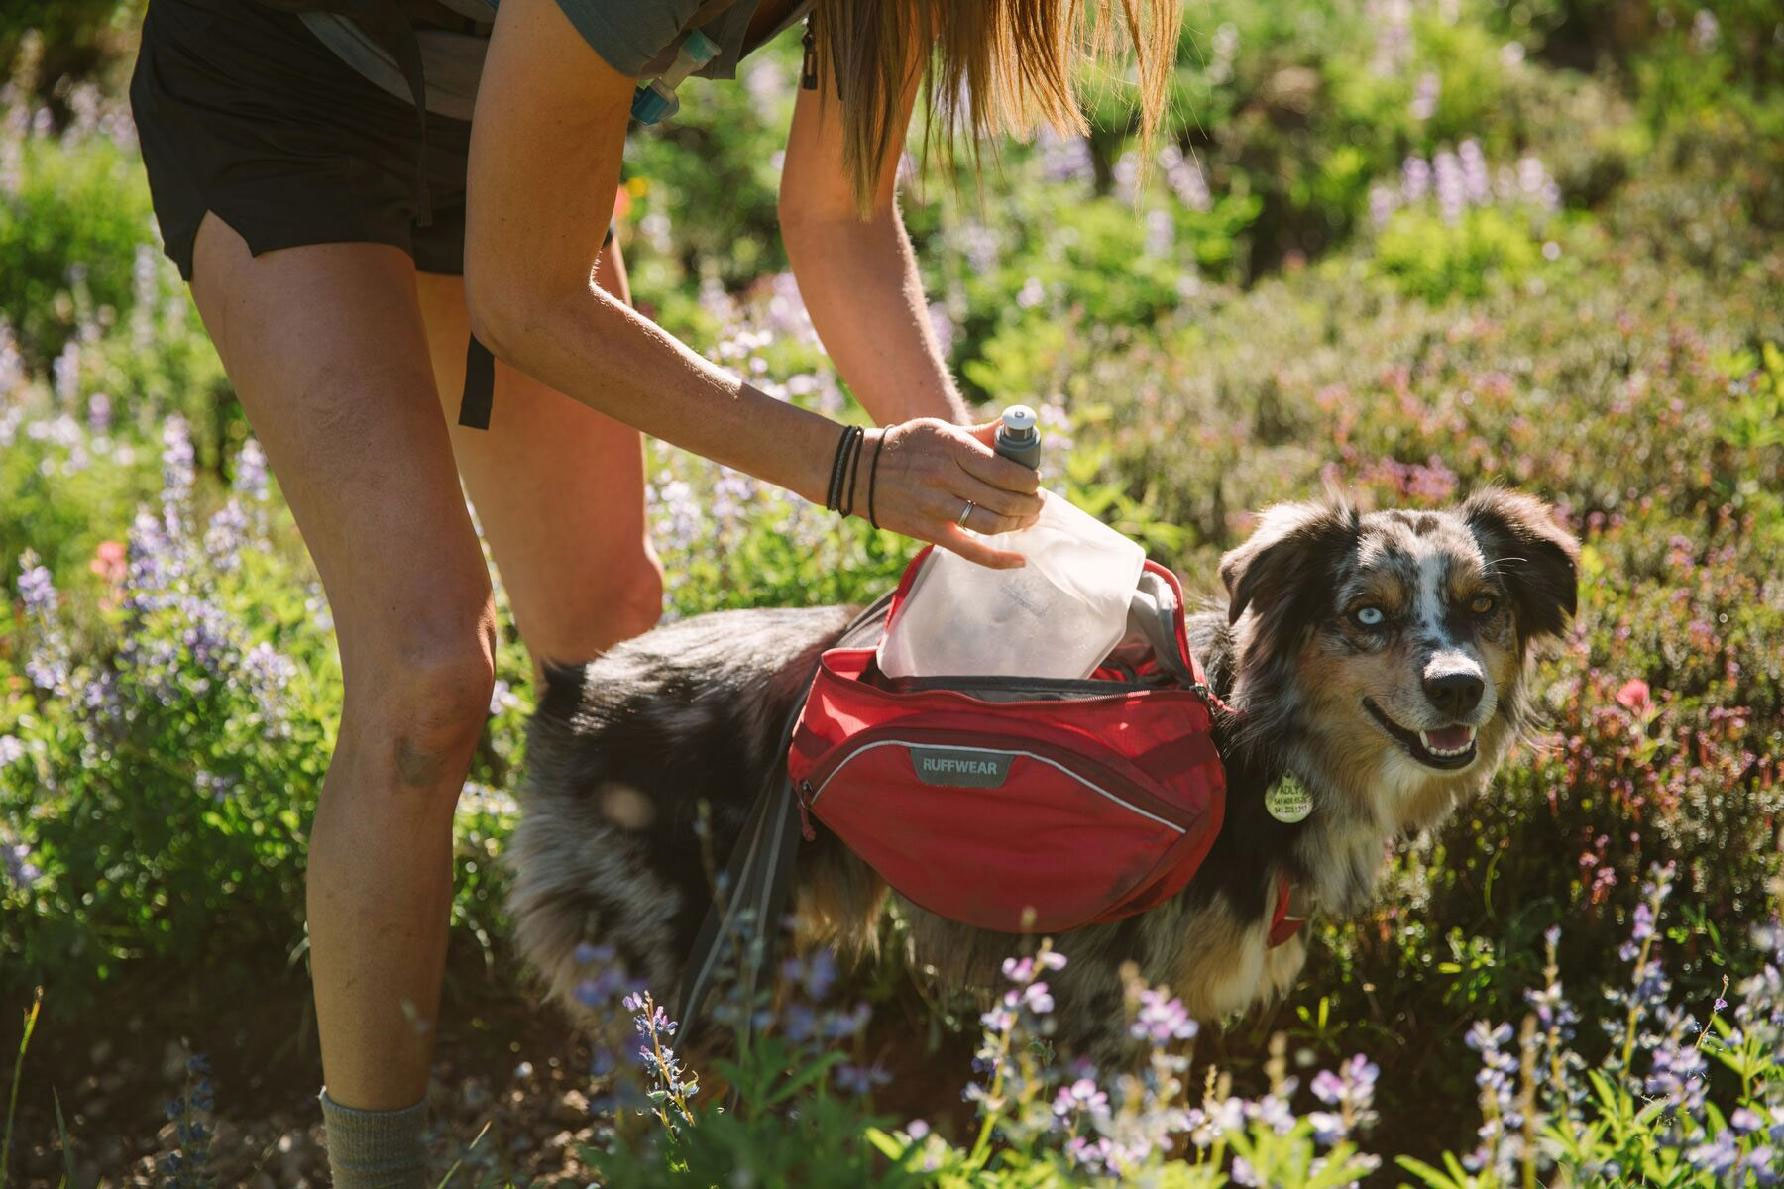 adding items to dog's backpack